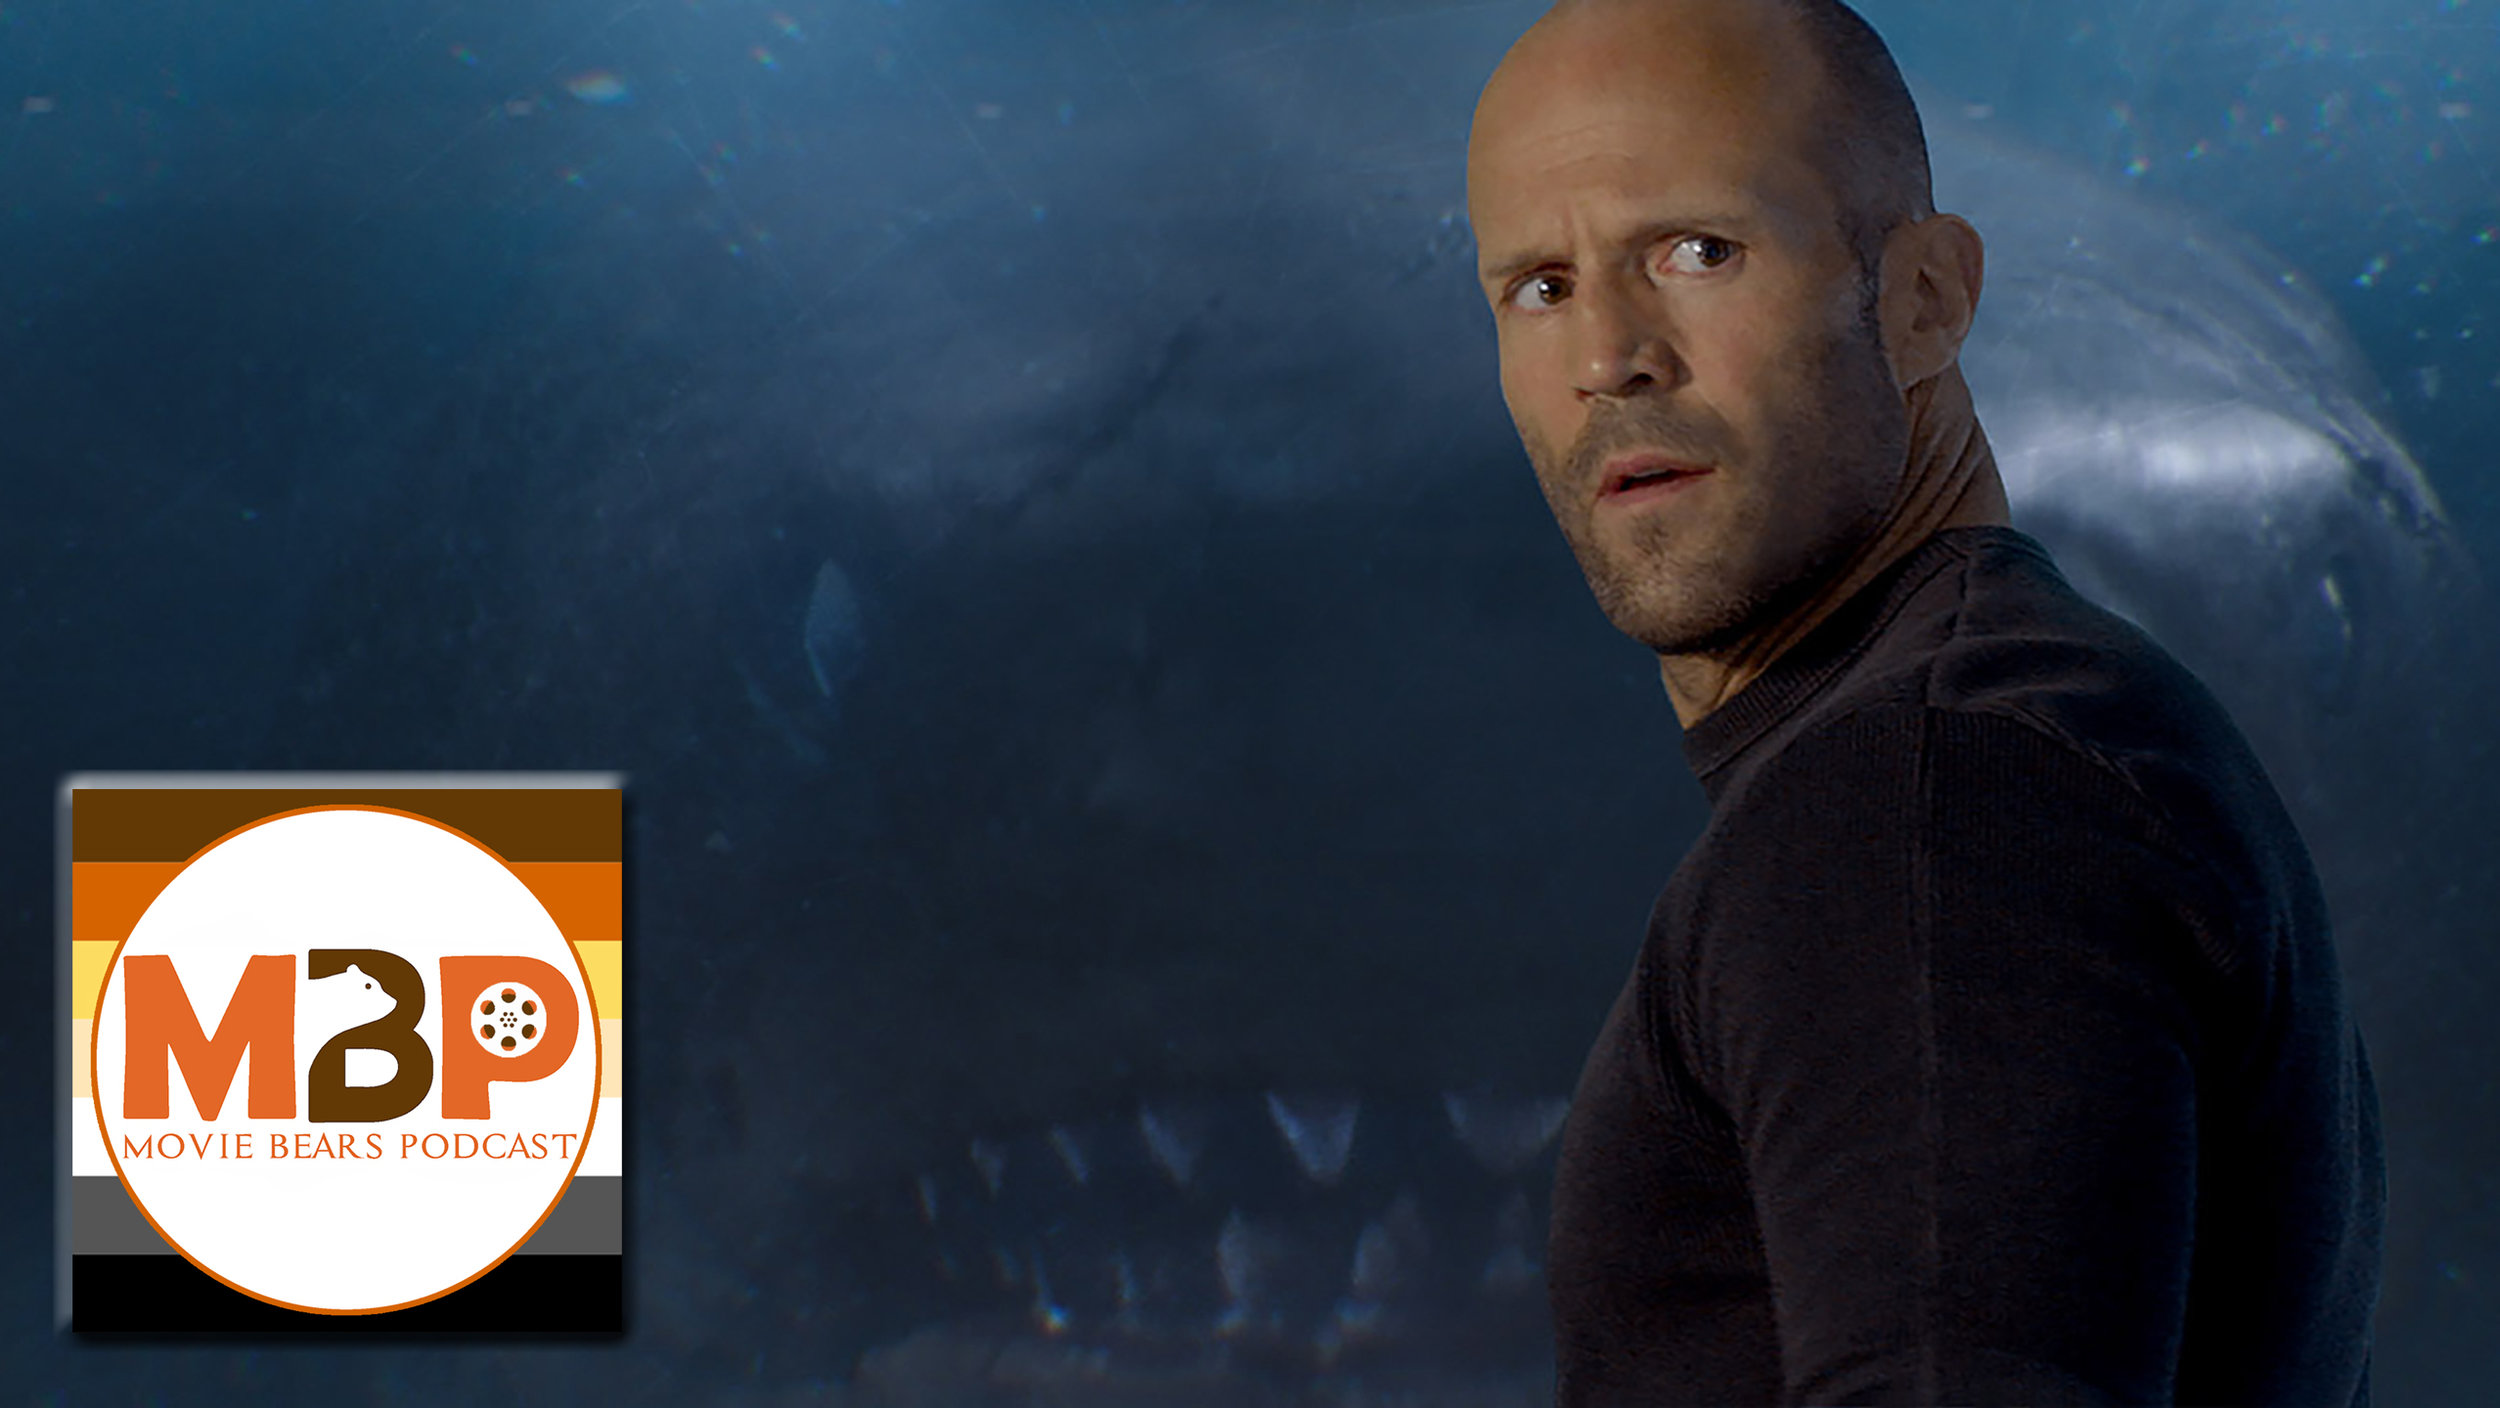 MBP e291 - 'The Meg' (8/14/18)    My god... it's Megaladon! On this week's episode of the Movie Bears Podcast, the boys dive off the deep end and swim with the massive sharks of 'The Meg.' Is this the perfect summer movie? Or did it sink our expectations?